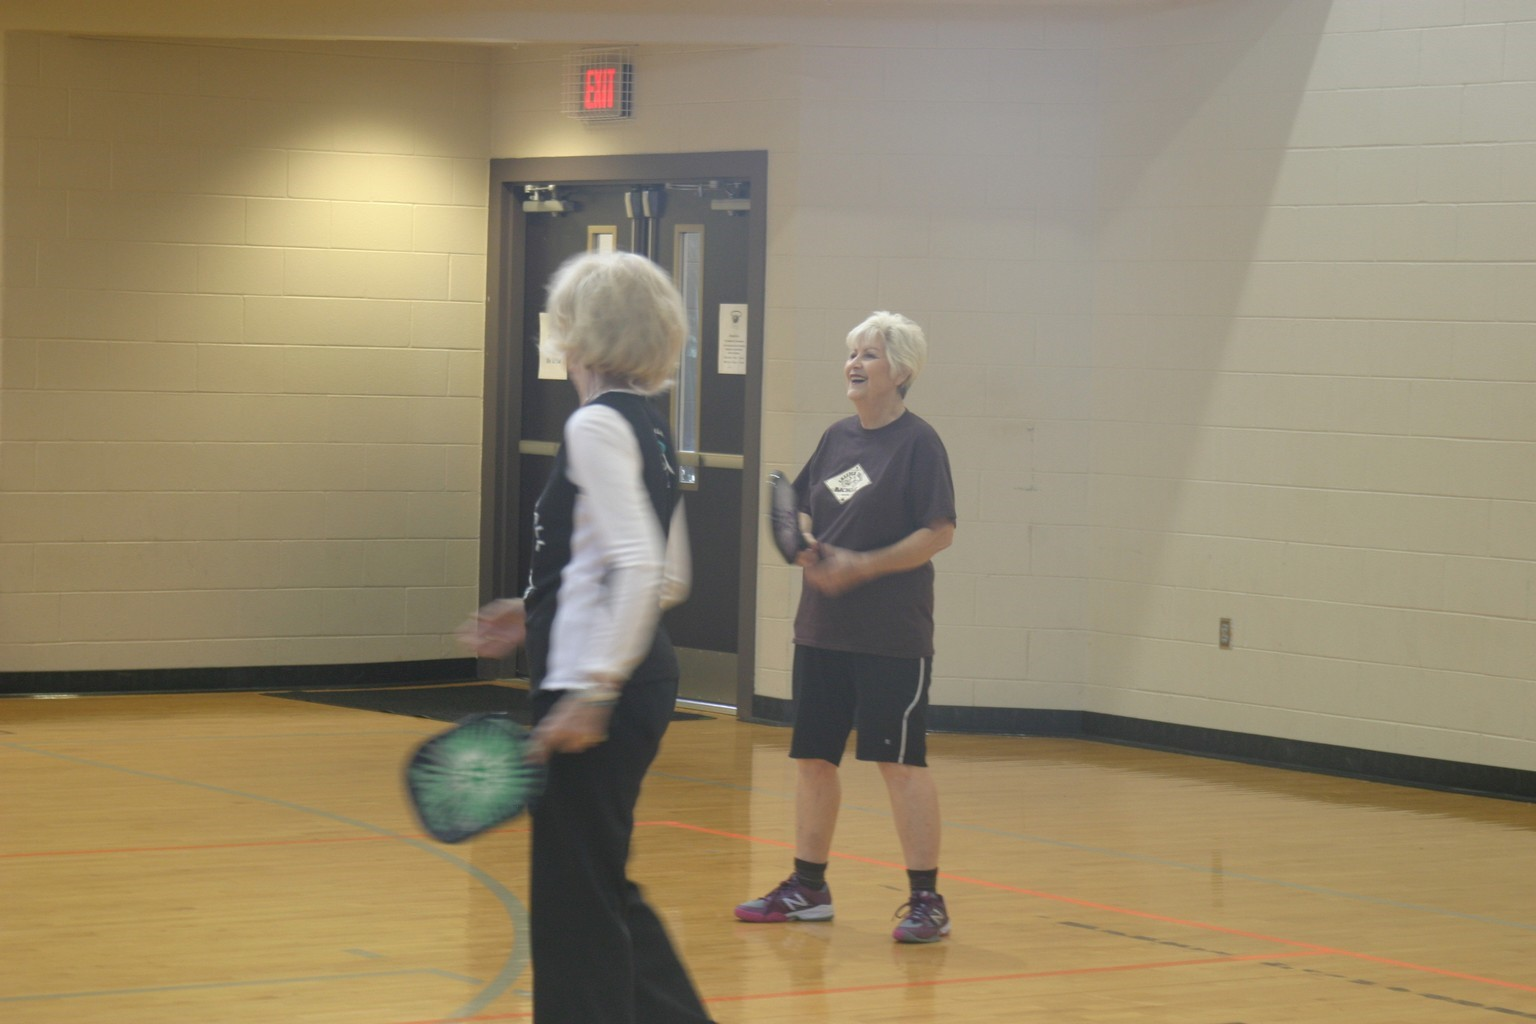 trussville pickleball, birmingham pickleball, pickleball, family pickleball,trussville civic center, trussville